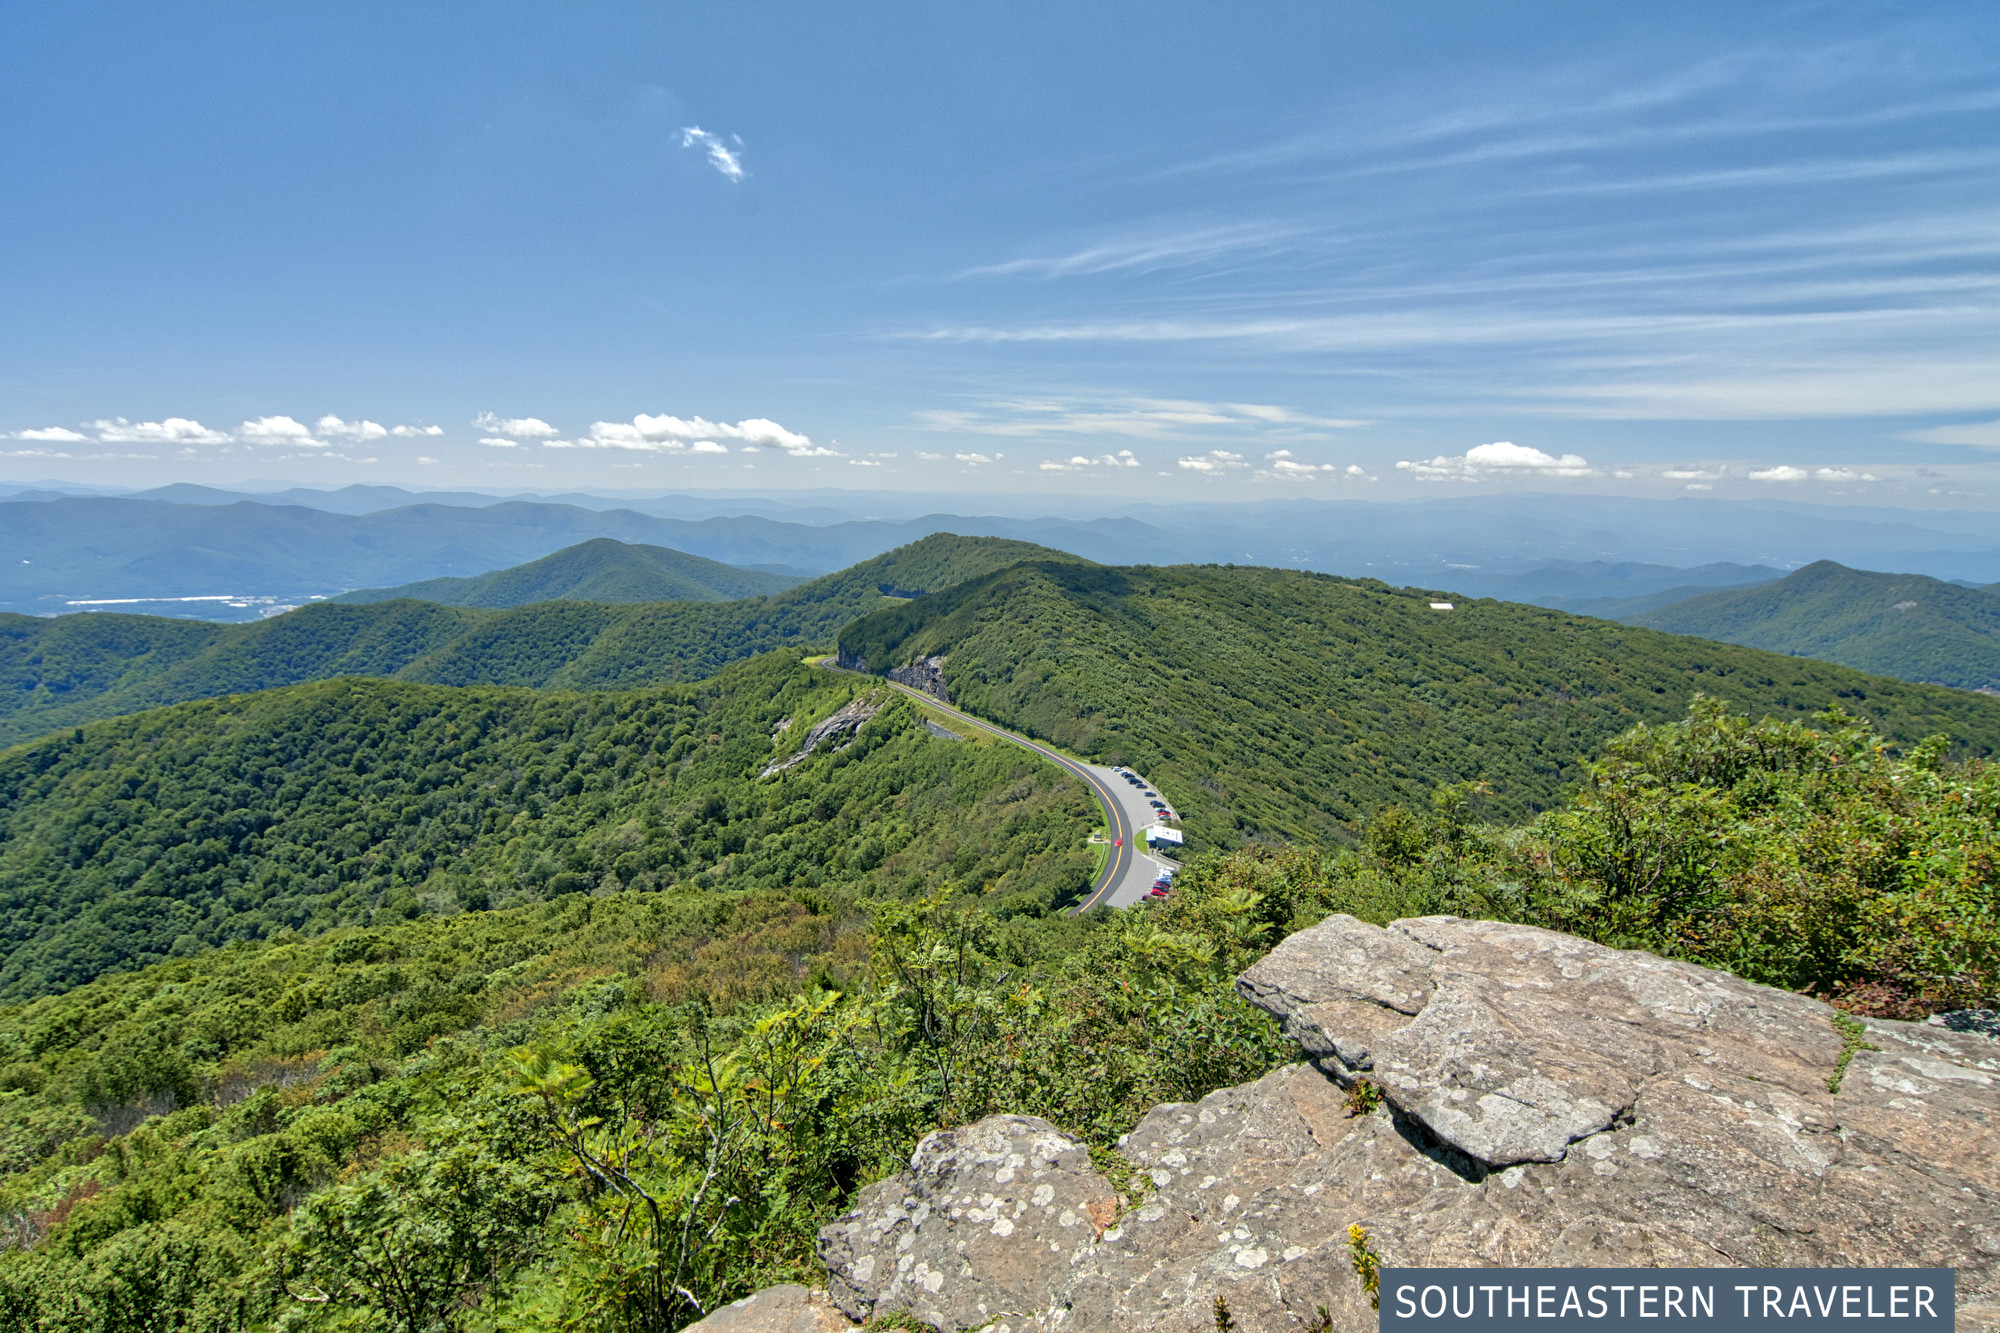 View from Craggy Pinnacle on the Blue Ridge Parkway near Asheville, North Carolina